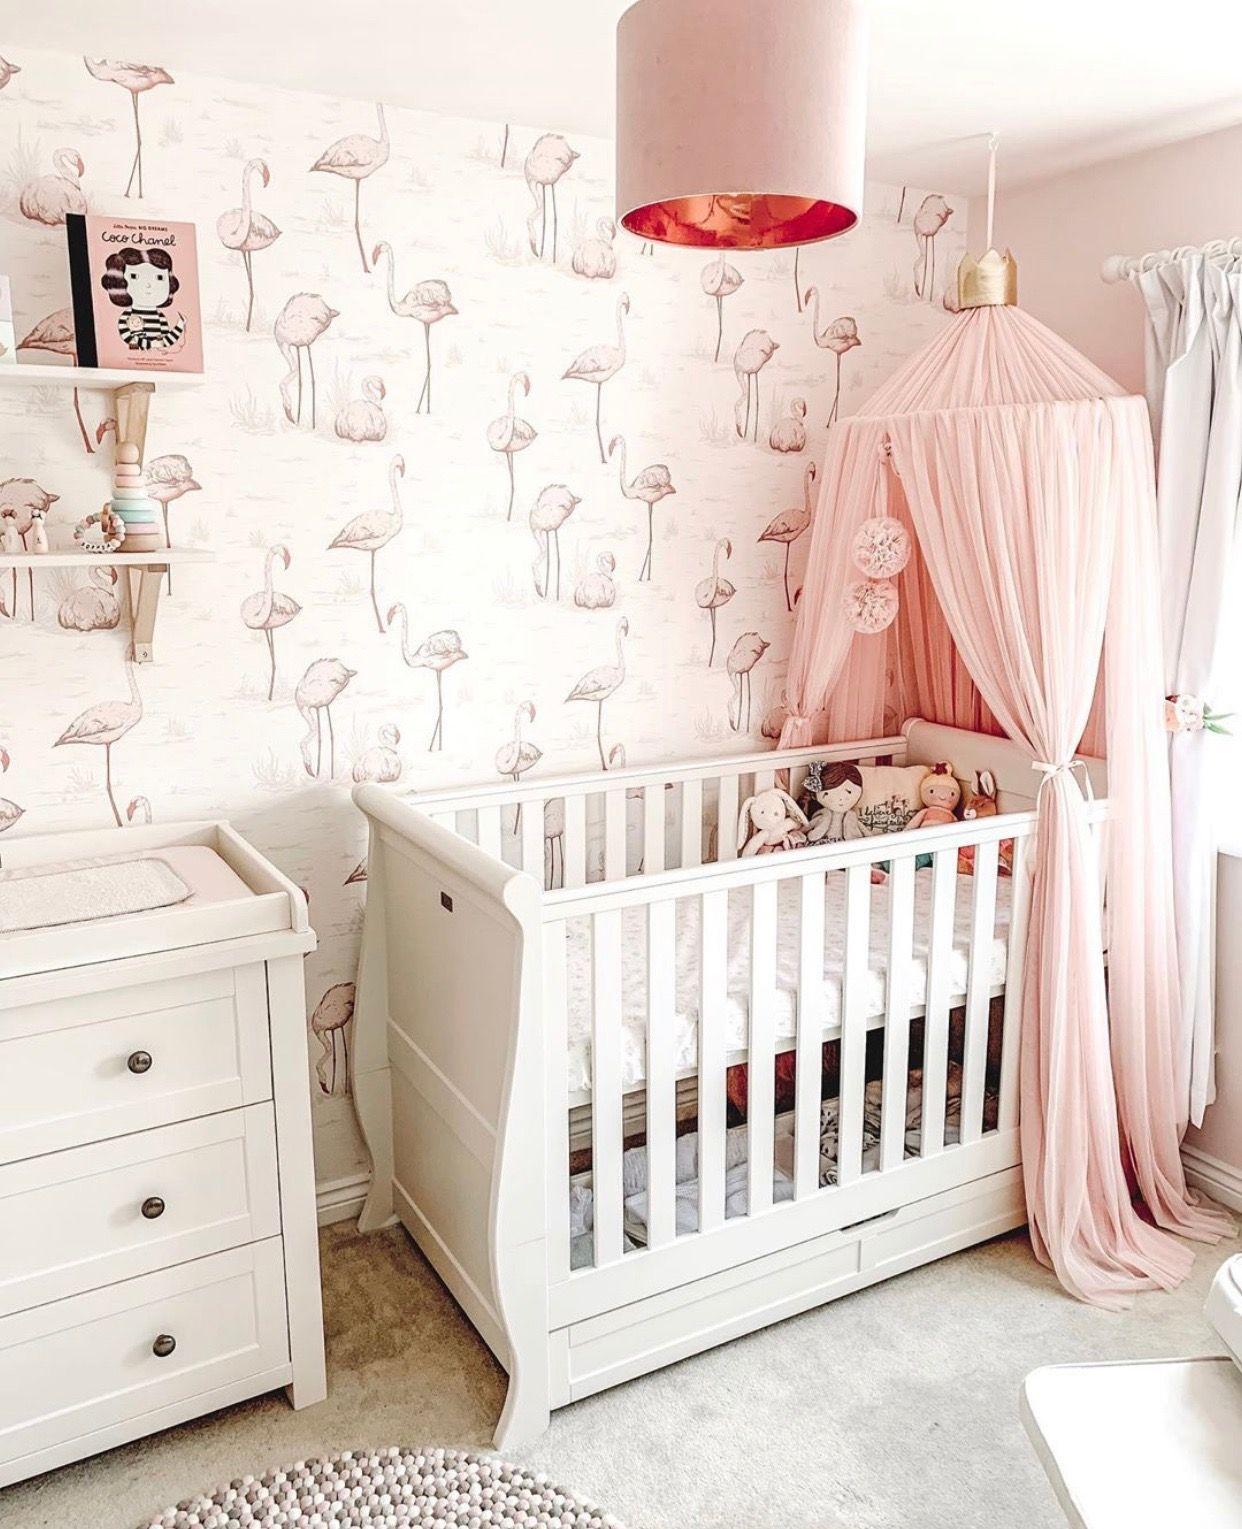 Flamingo Nursery Decor Blush Pink Nursery Girl Nursery Ideas Flamingo Wallpaper Pink Baby Room Decor Nursery Baby Room Baby Room Colors